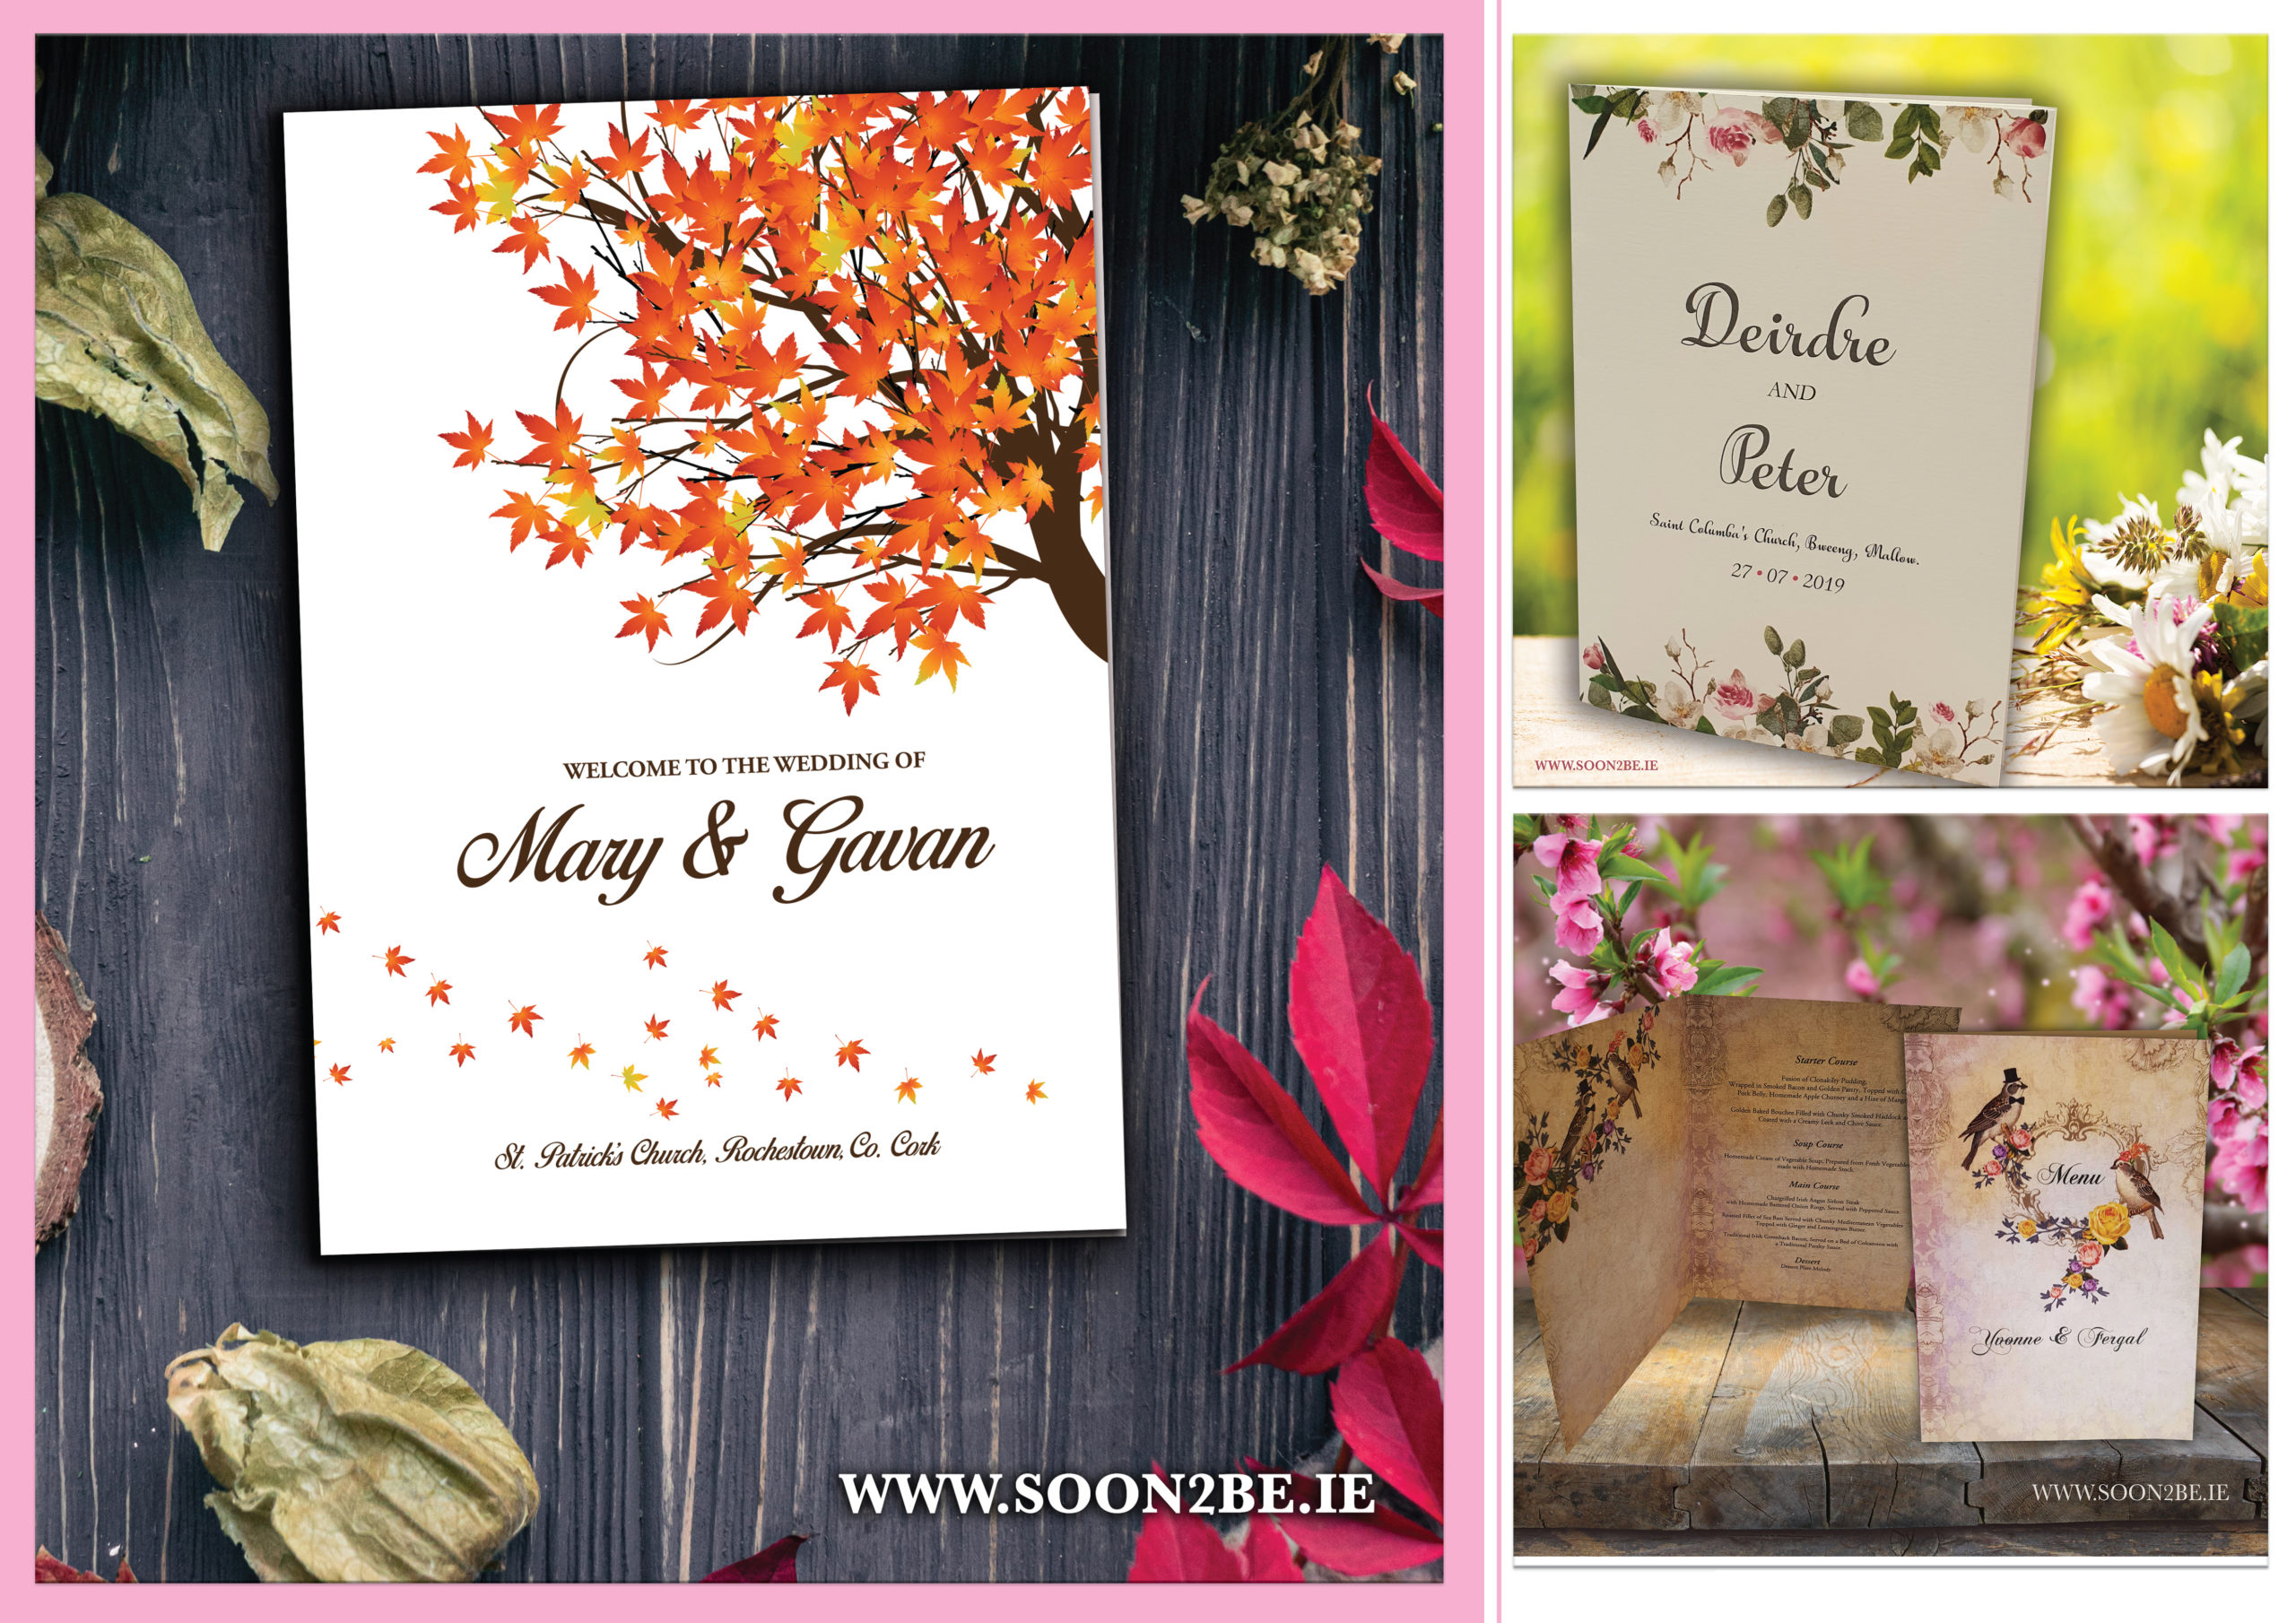 ceremony booklets, wedding booklets, wedding mass, wedding, booklet, flowers, vintage, tree, autumn,